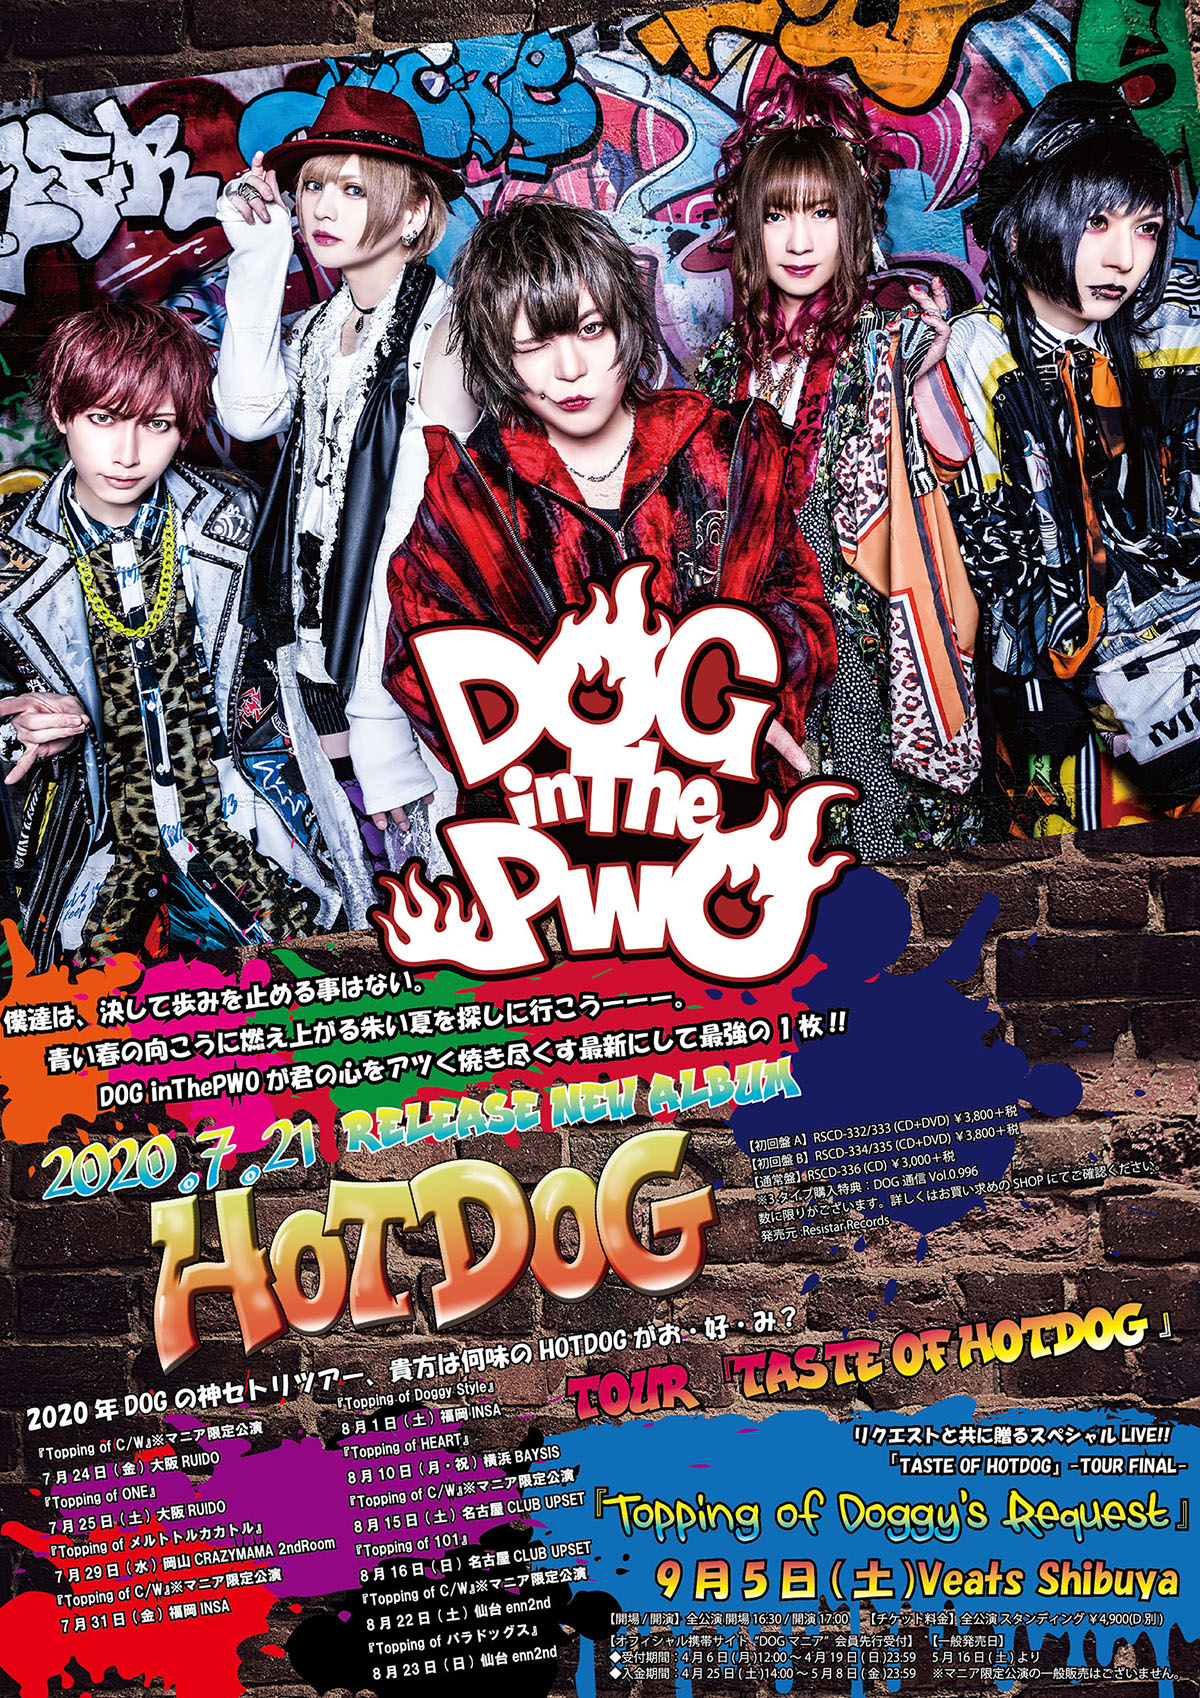 2020.07.21(日) Release DOG inThePWO NEW ALBUM 「HOTDOG」/TOUR「TASTE OF HOTDOG」